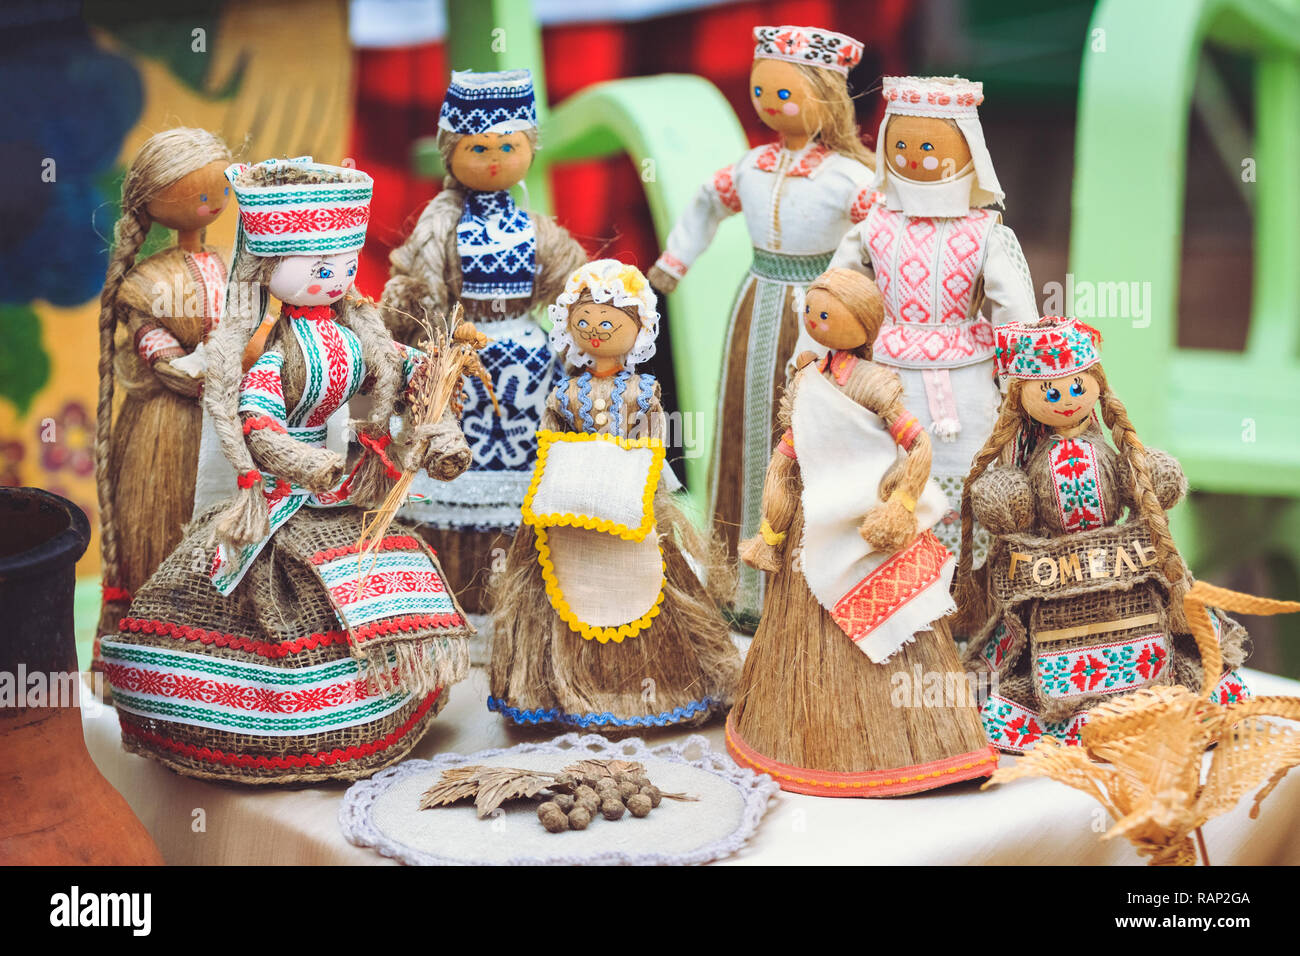 Dolls souvenirs with national patterns of Belarus from rags and straw - Stock Image